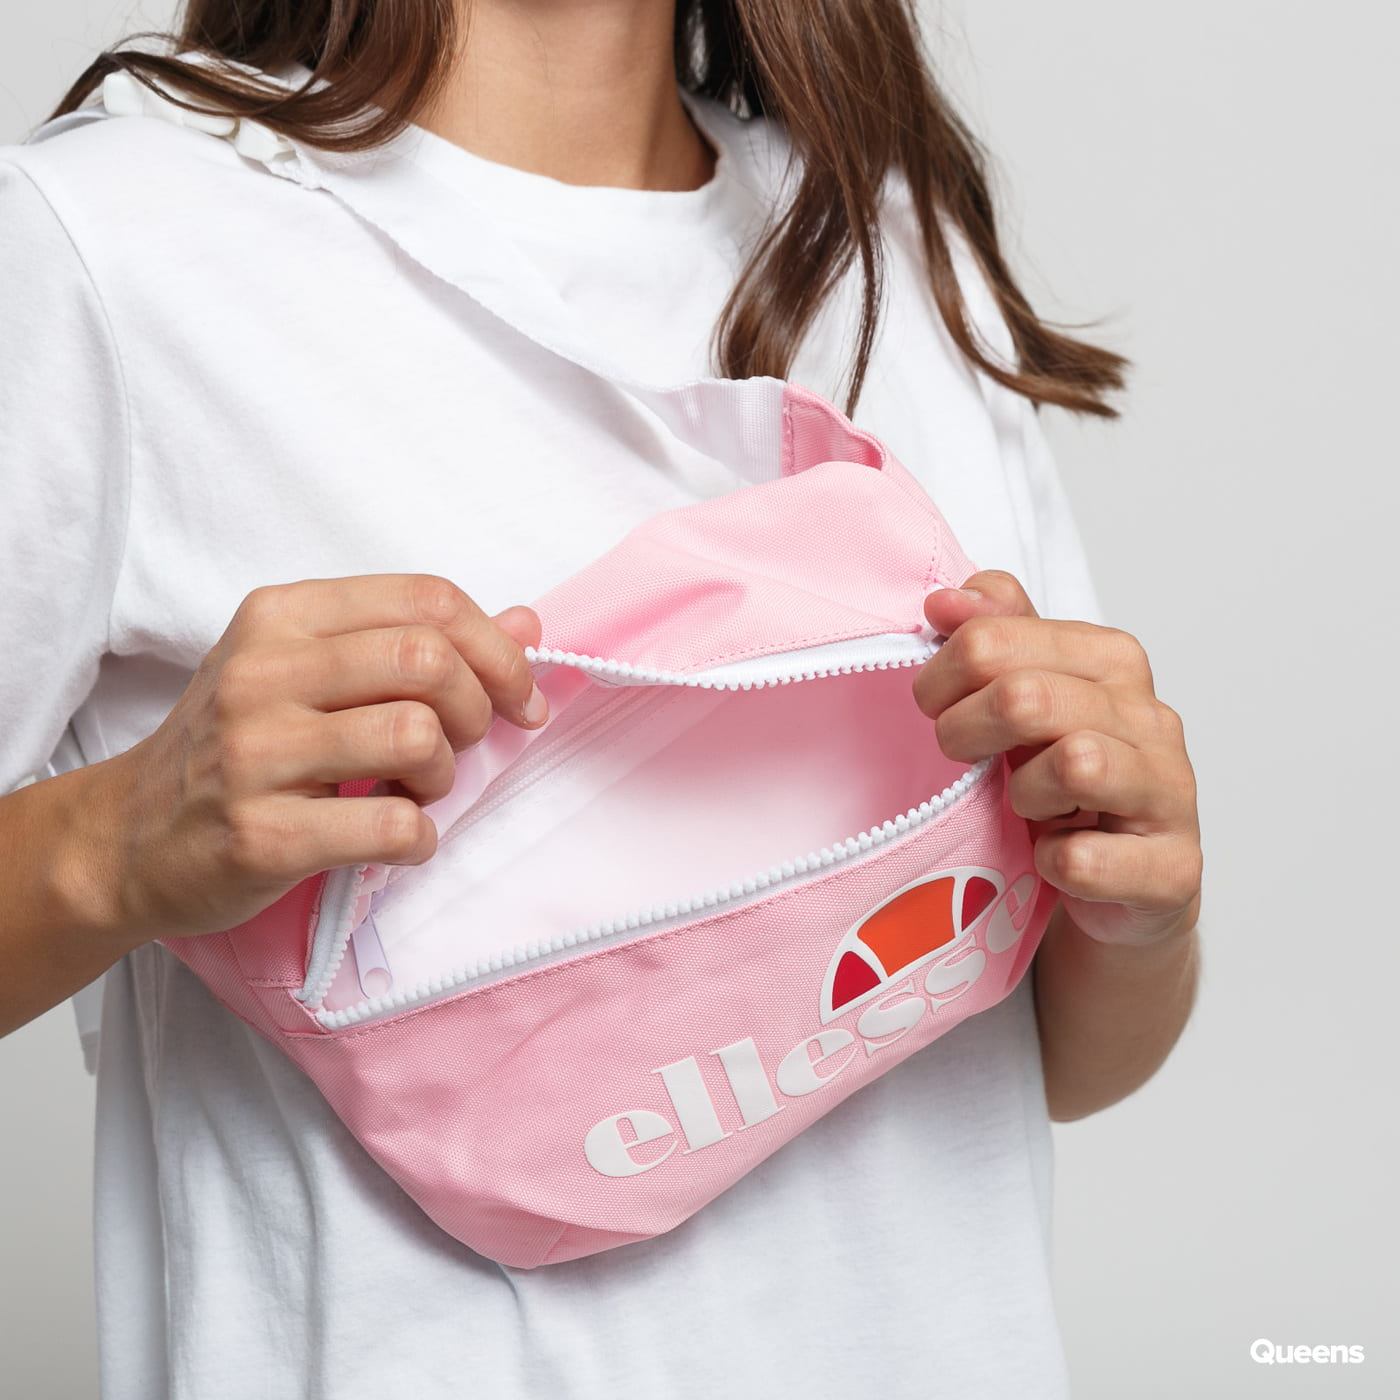 ellesse Rosca Cross Body Bag ružová